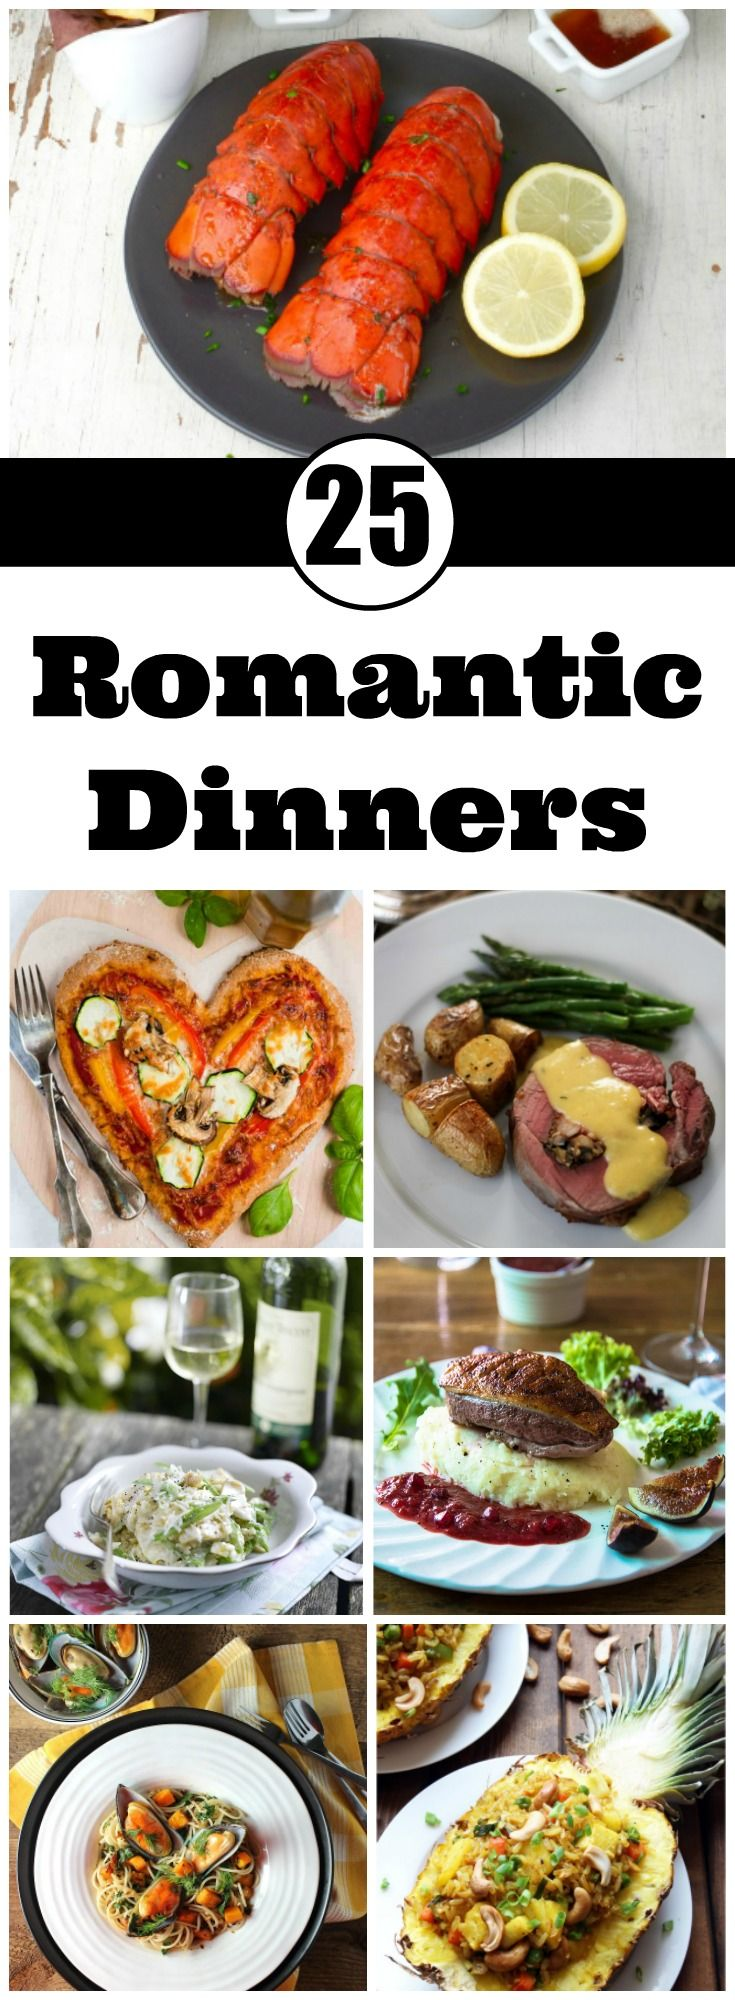 25 romantic dinners to fall in love all over again yummy. Black Bedroom Furniture Sets. Home Design Ideas